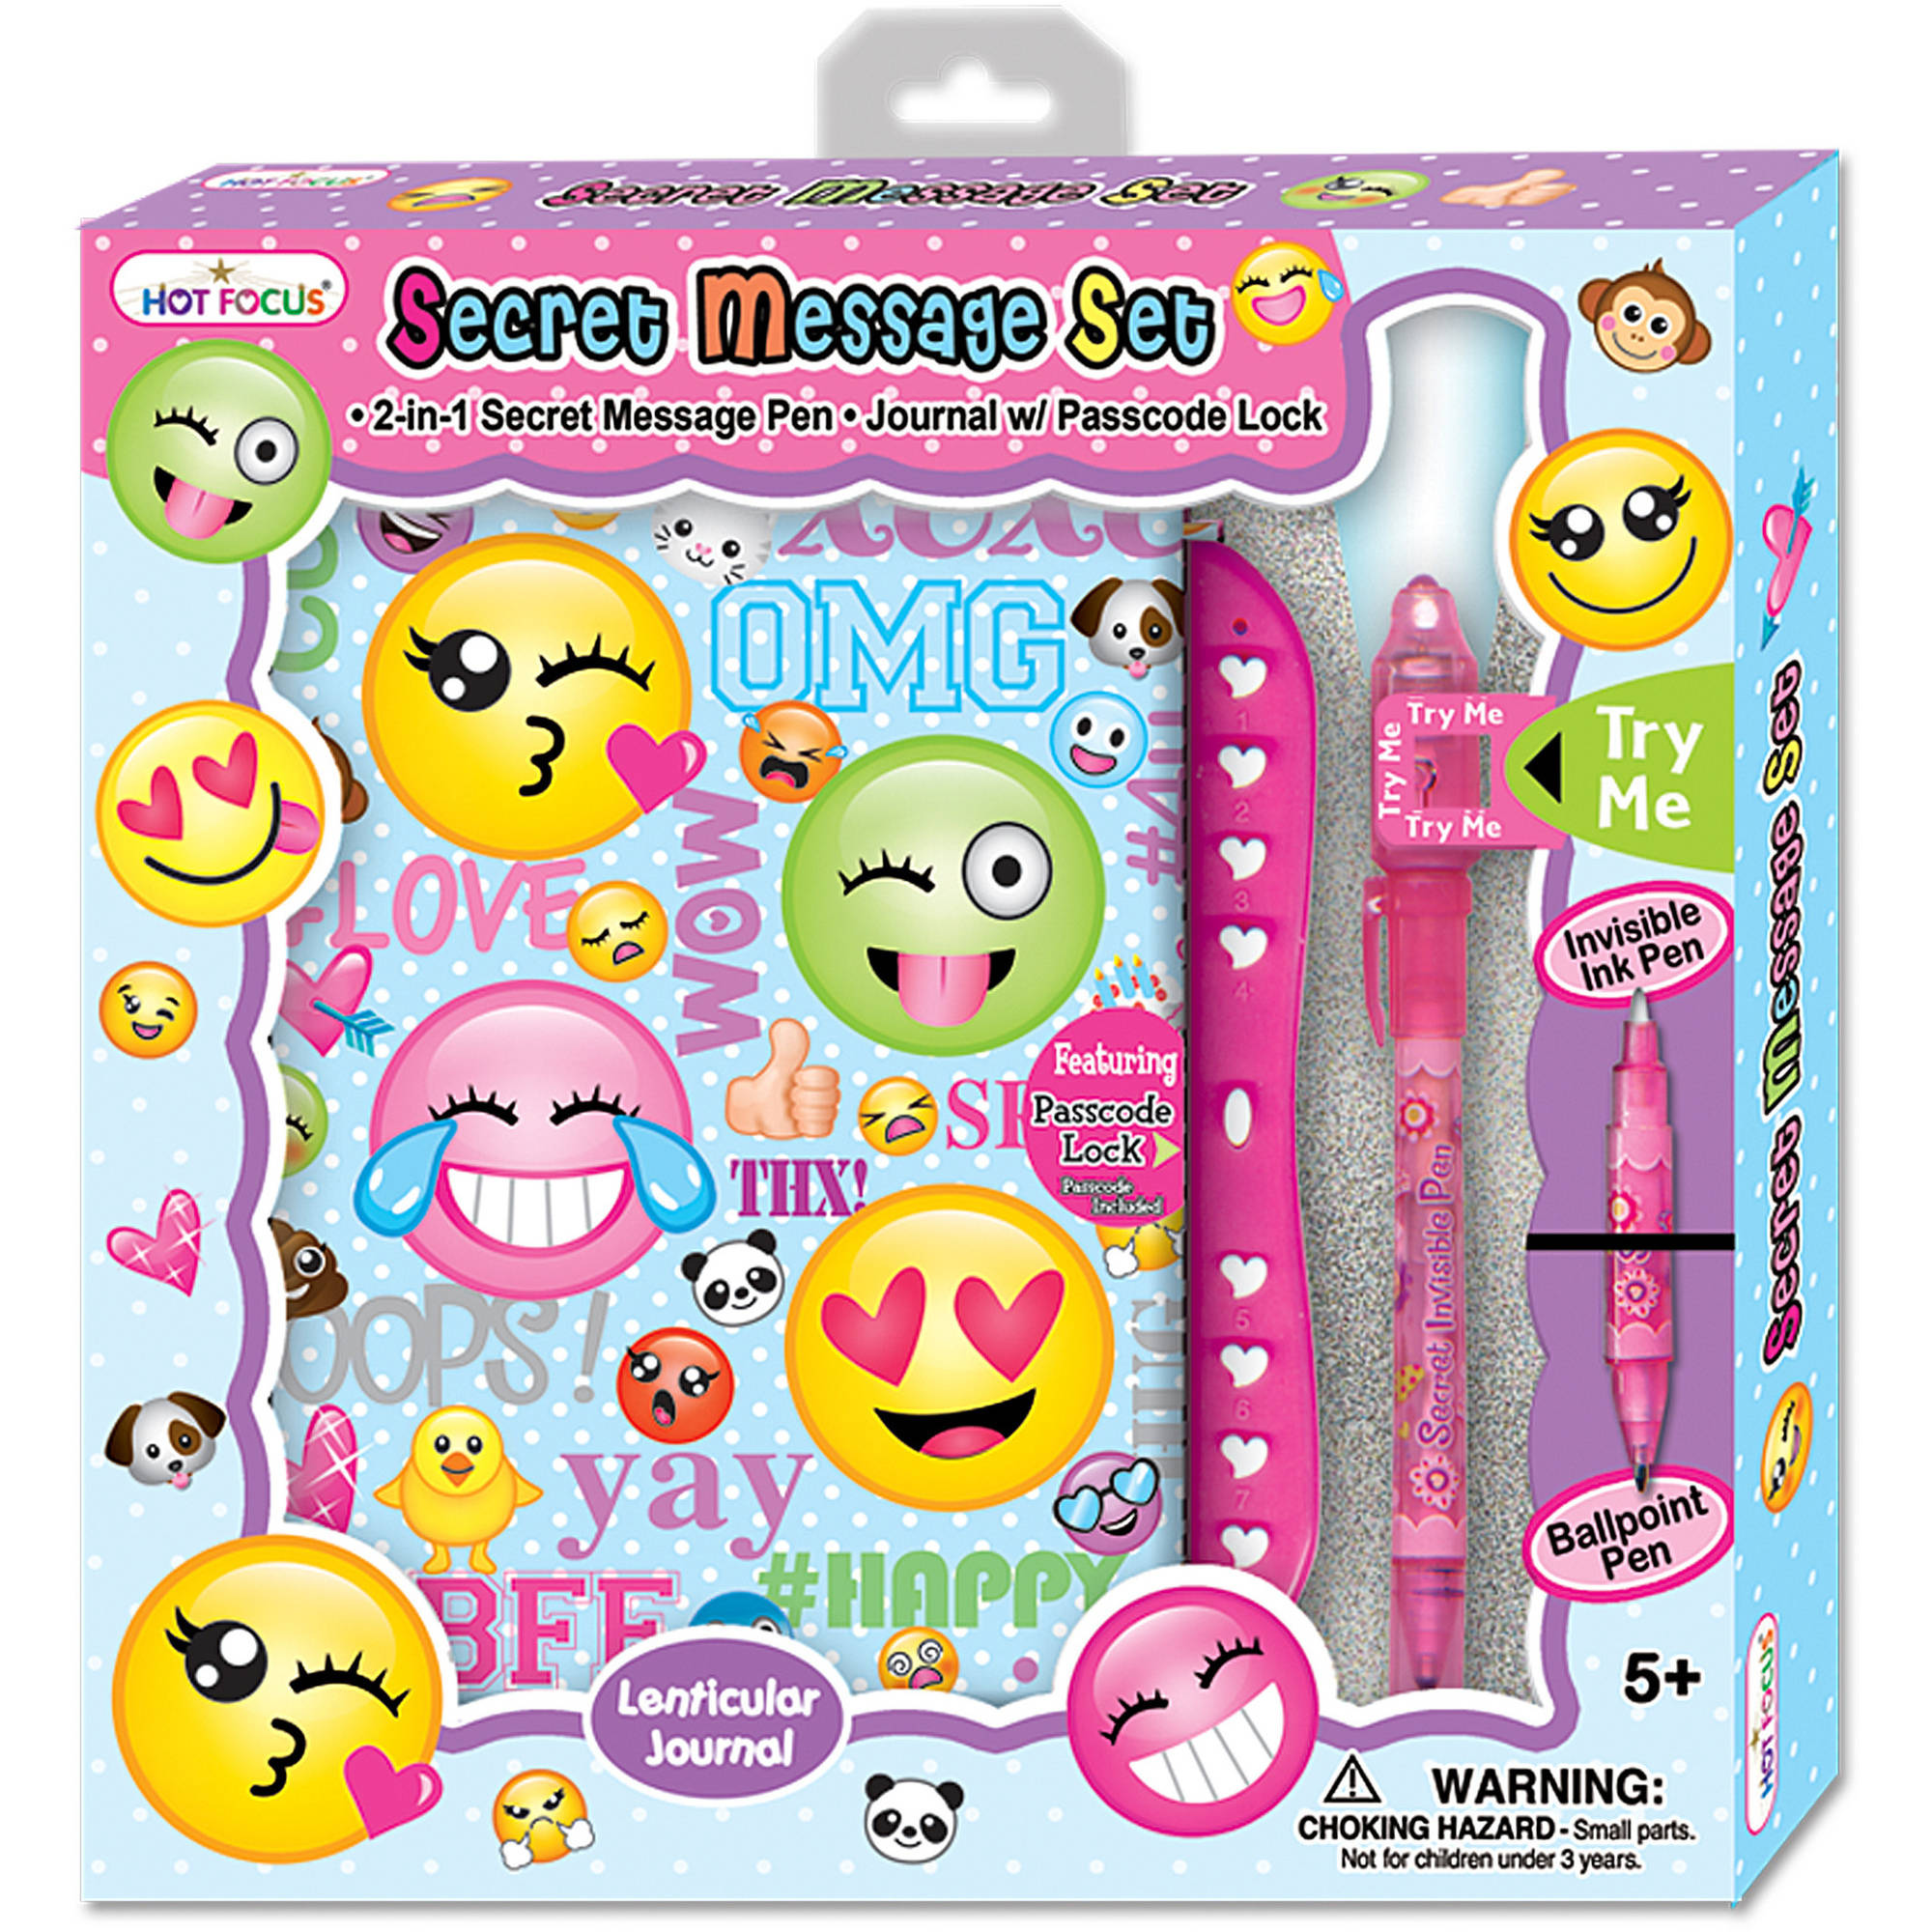 Hot Focus Secret Message Set with Passcode Lock, Emoji